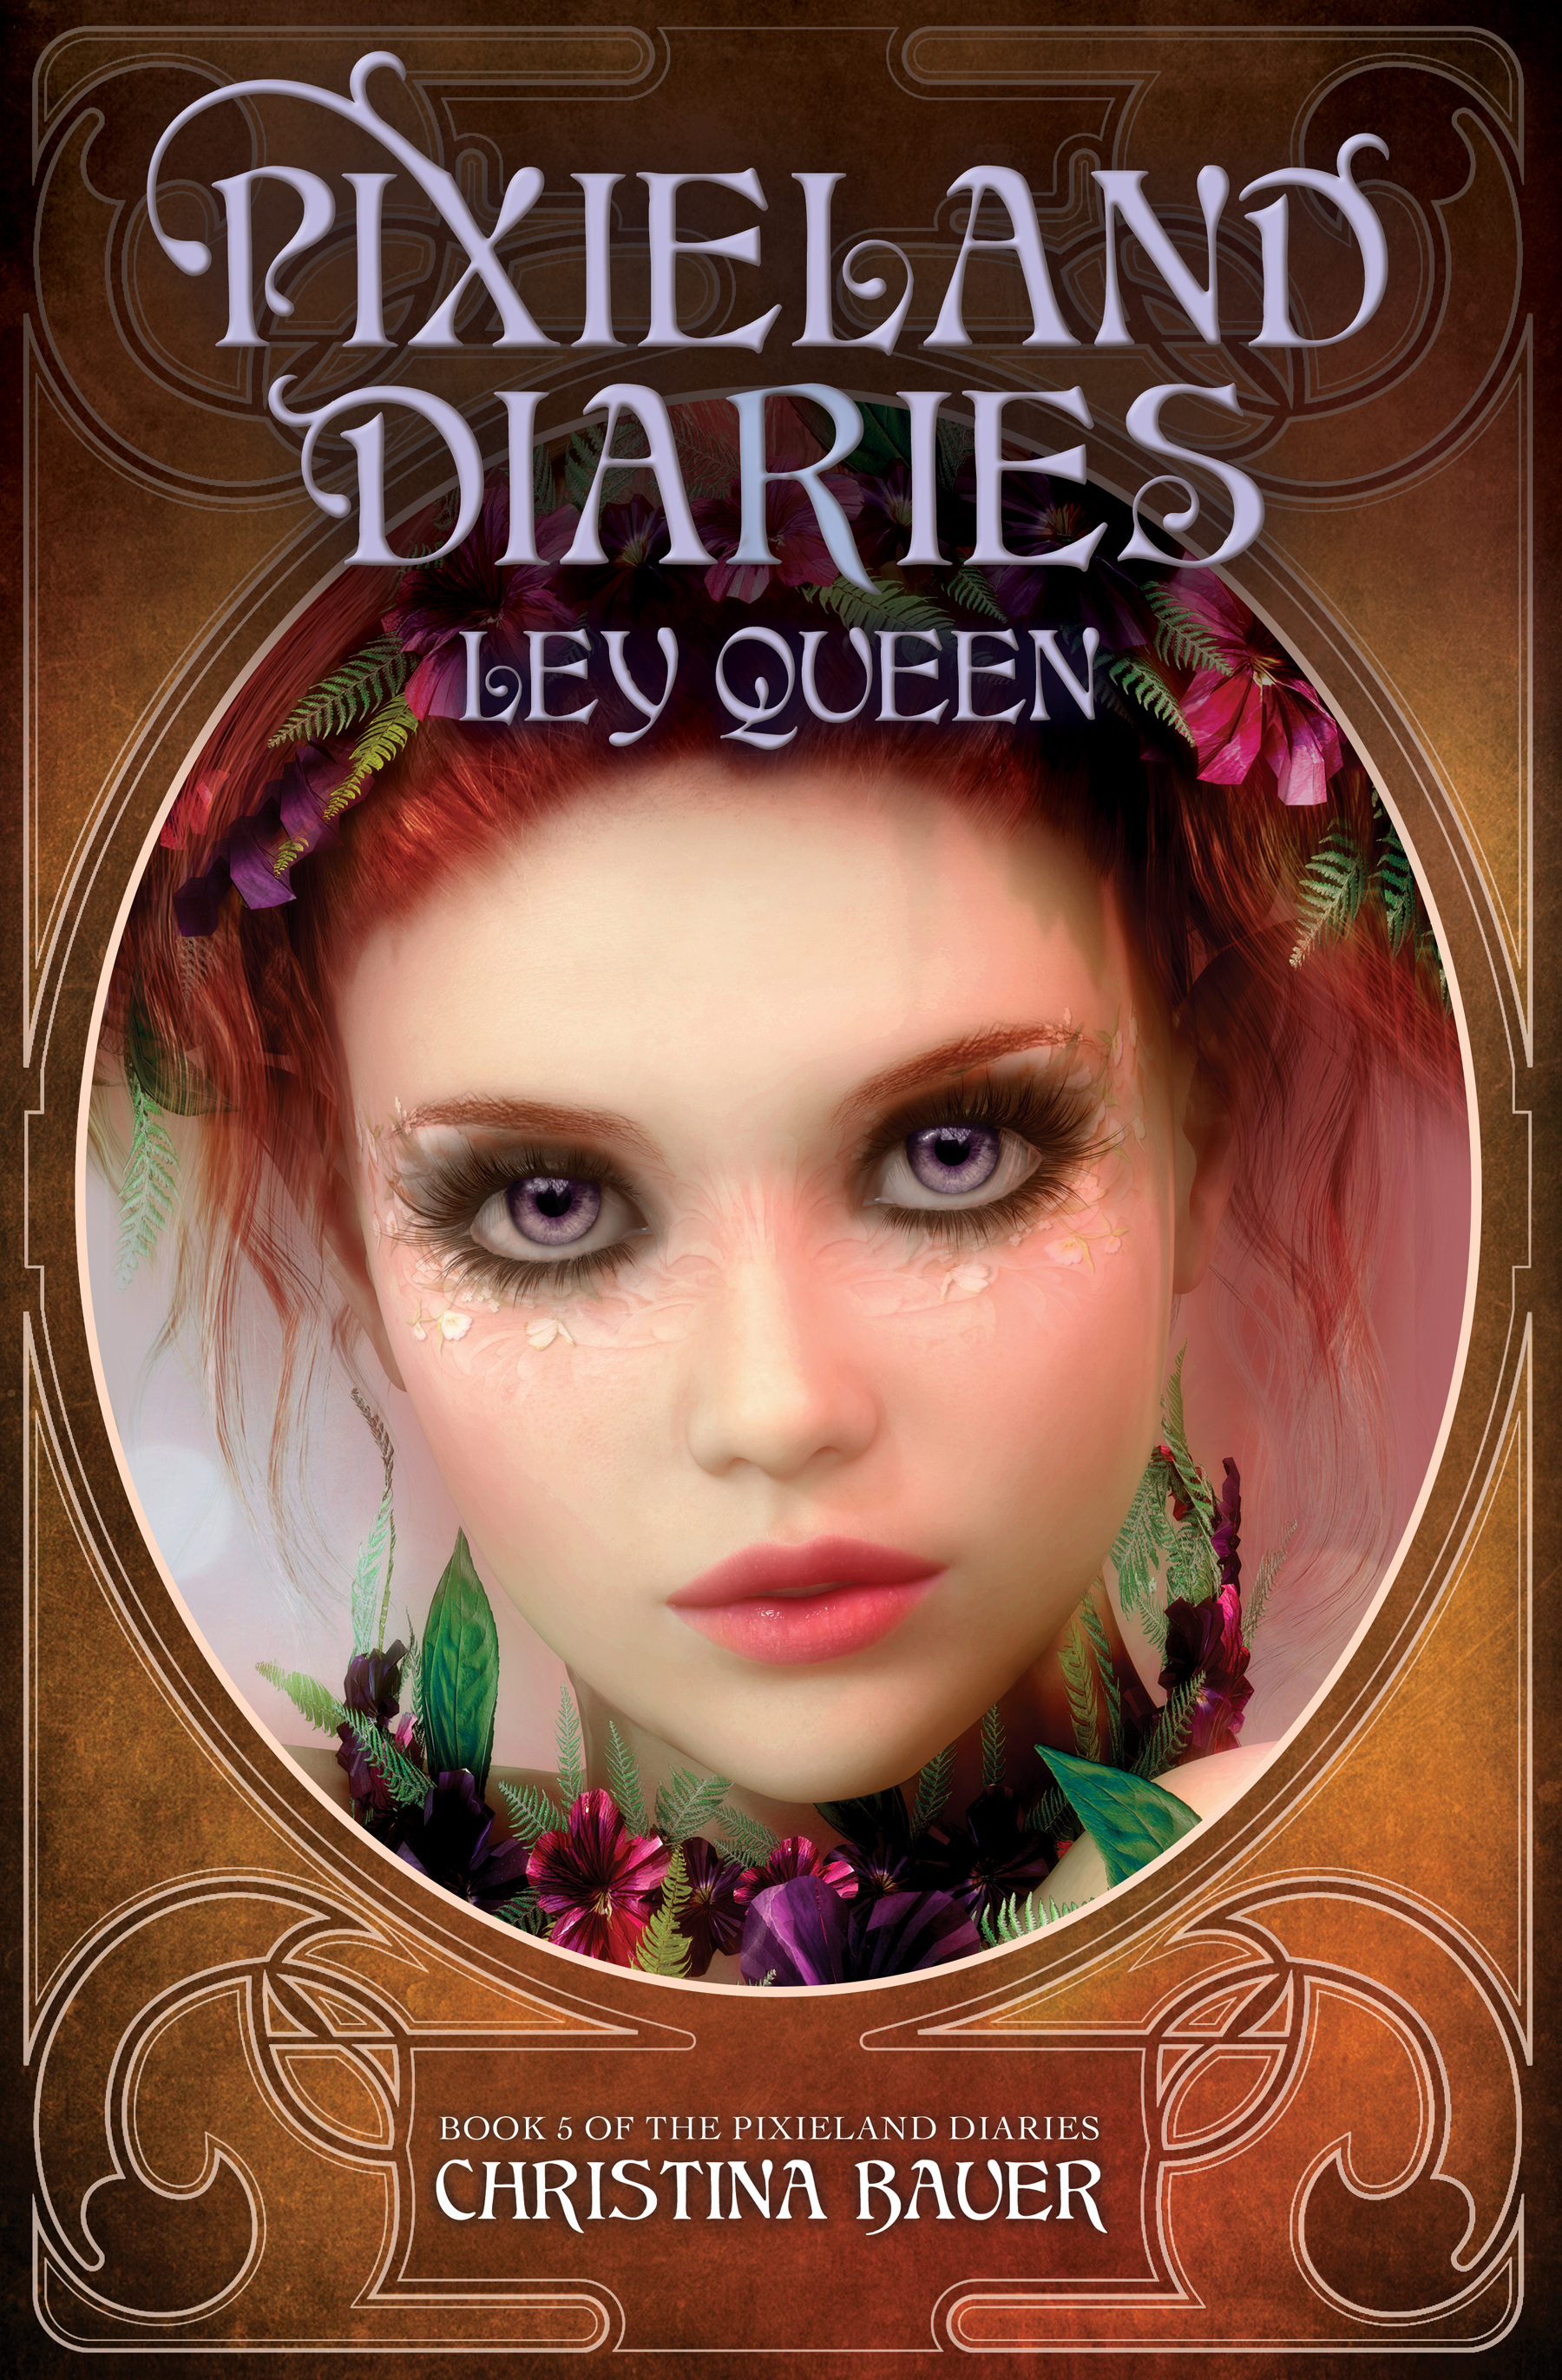 LEY QUEEN (Book 4)